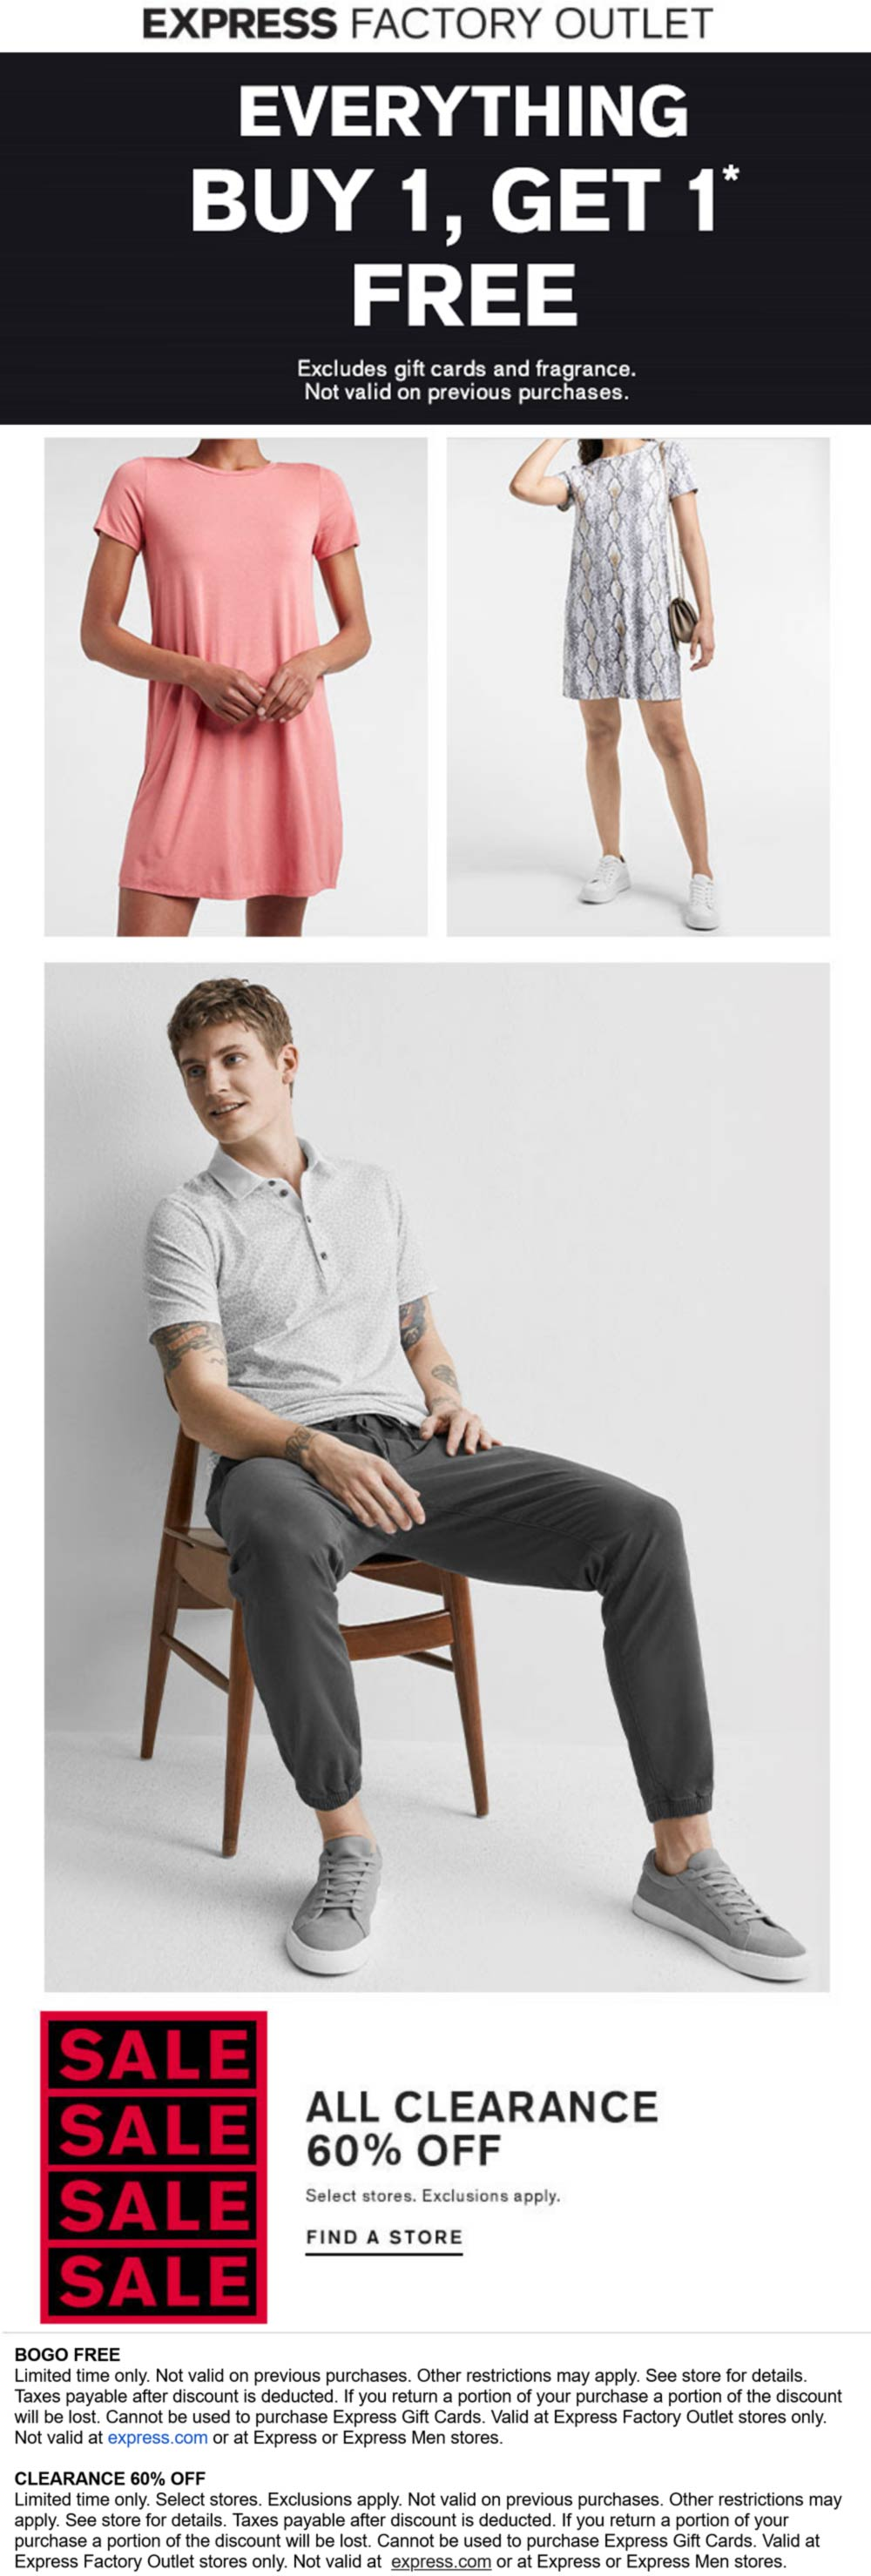 Express Factory Outlet stores Coupon  Second item free on everything at Express Factory Outlet #expressfactoryoutlet